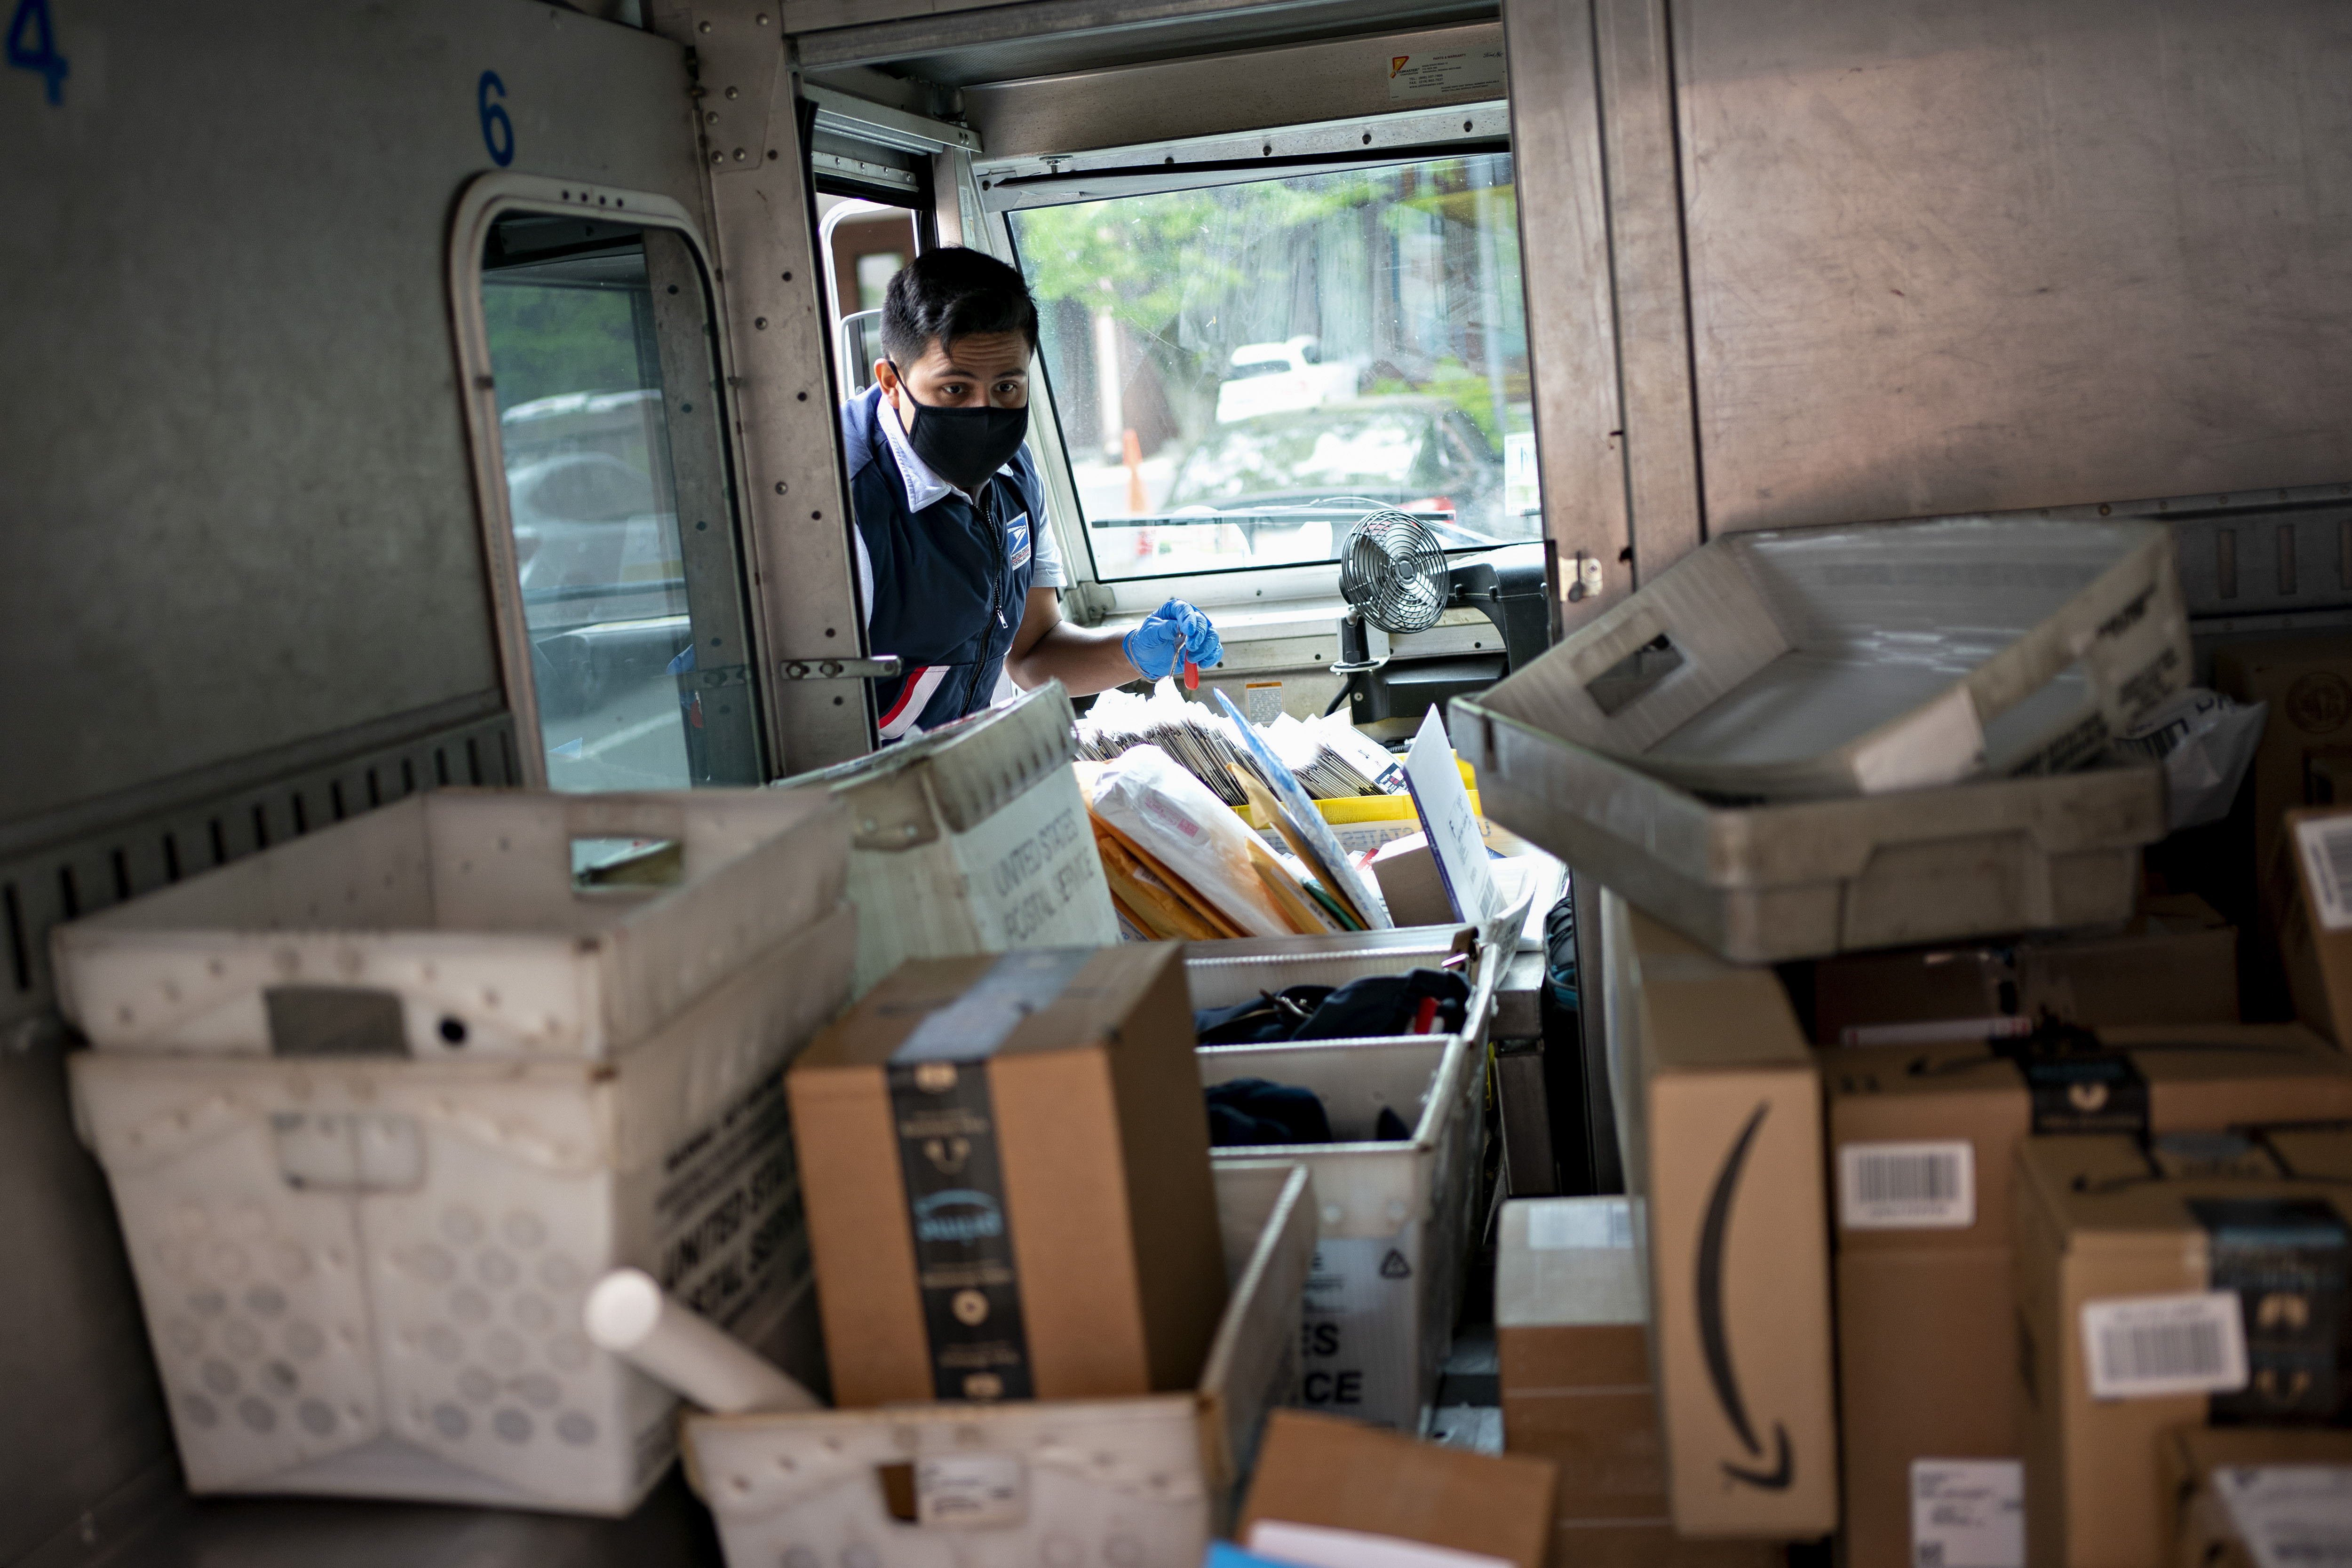 A United States Postal Service (USPS) letter carrier wears a protective mask and gloves while preparing to sort parcels in Fairfax, Virginia on May 19, 2020.